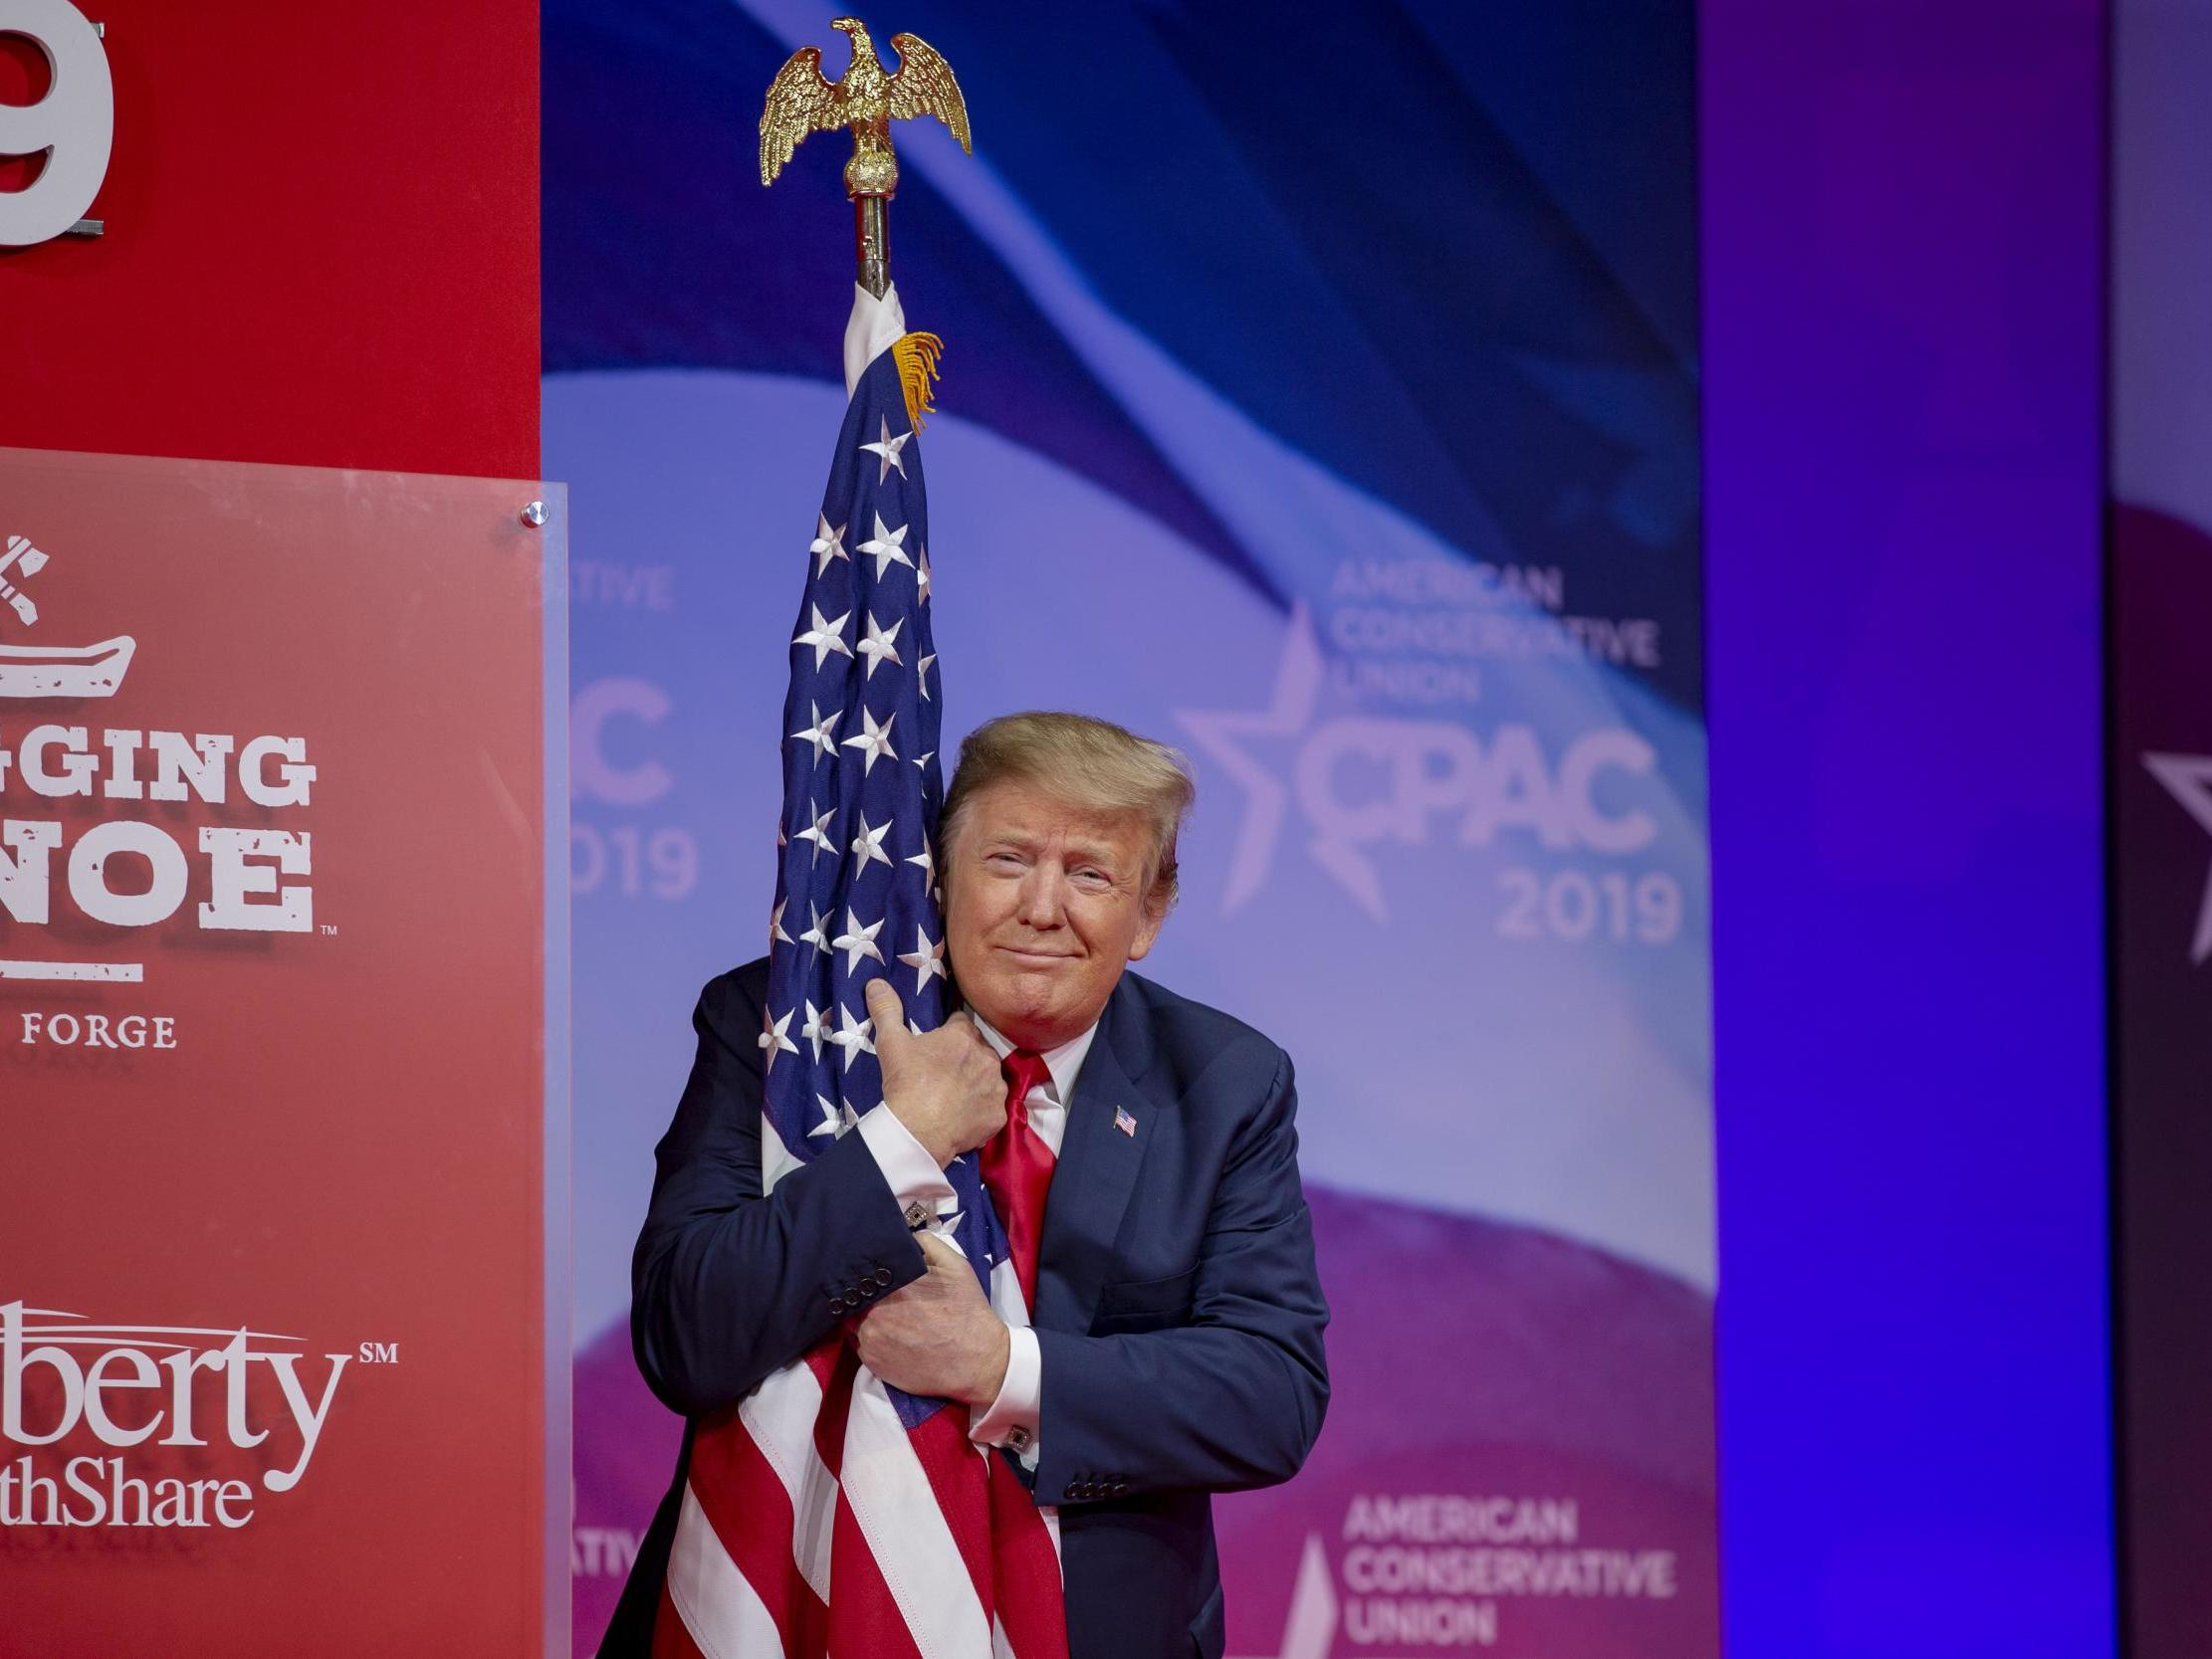 Trump goes off-script and hugs US flag in expletive-laden CPAC speech